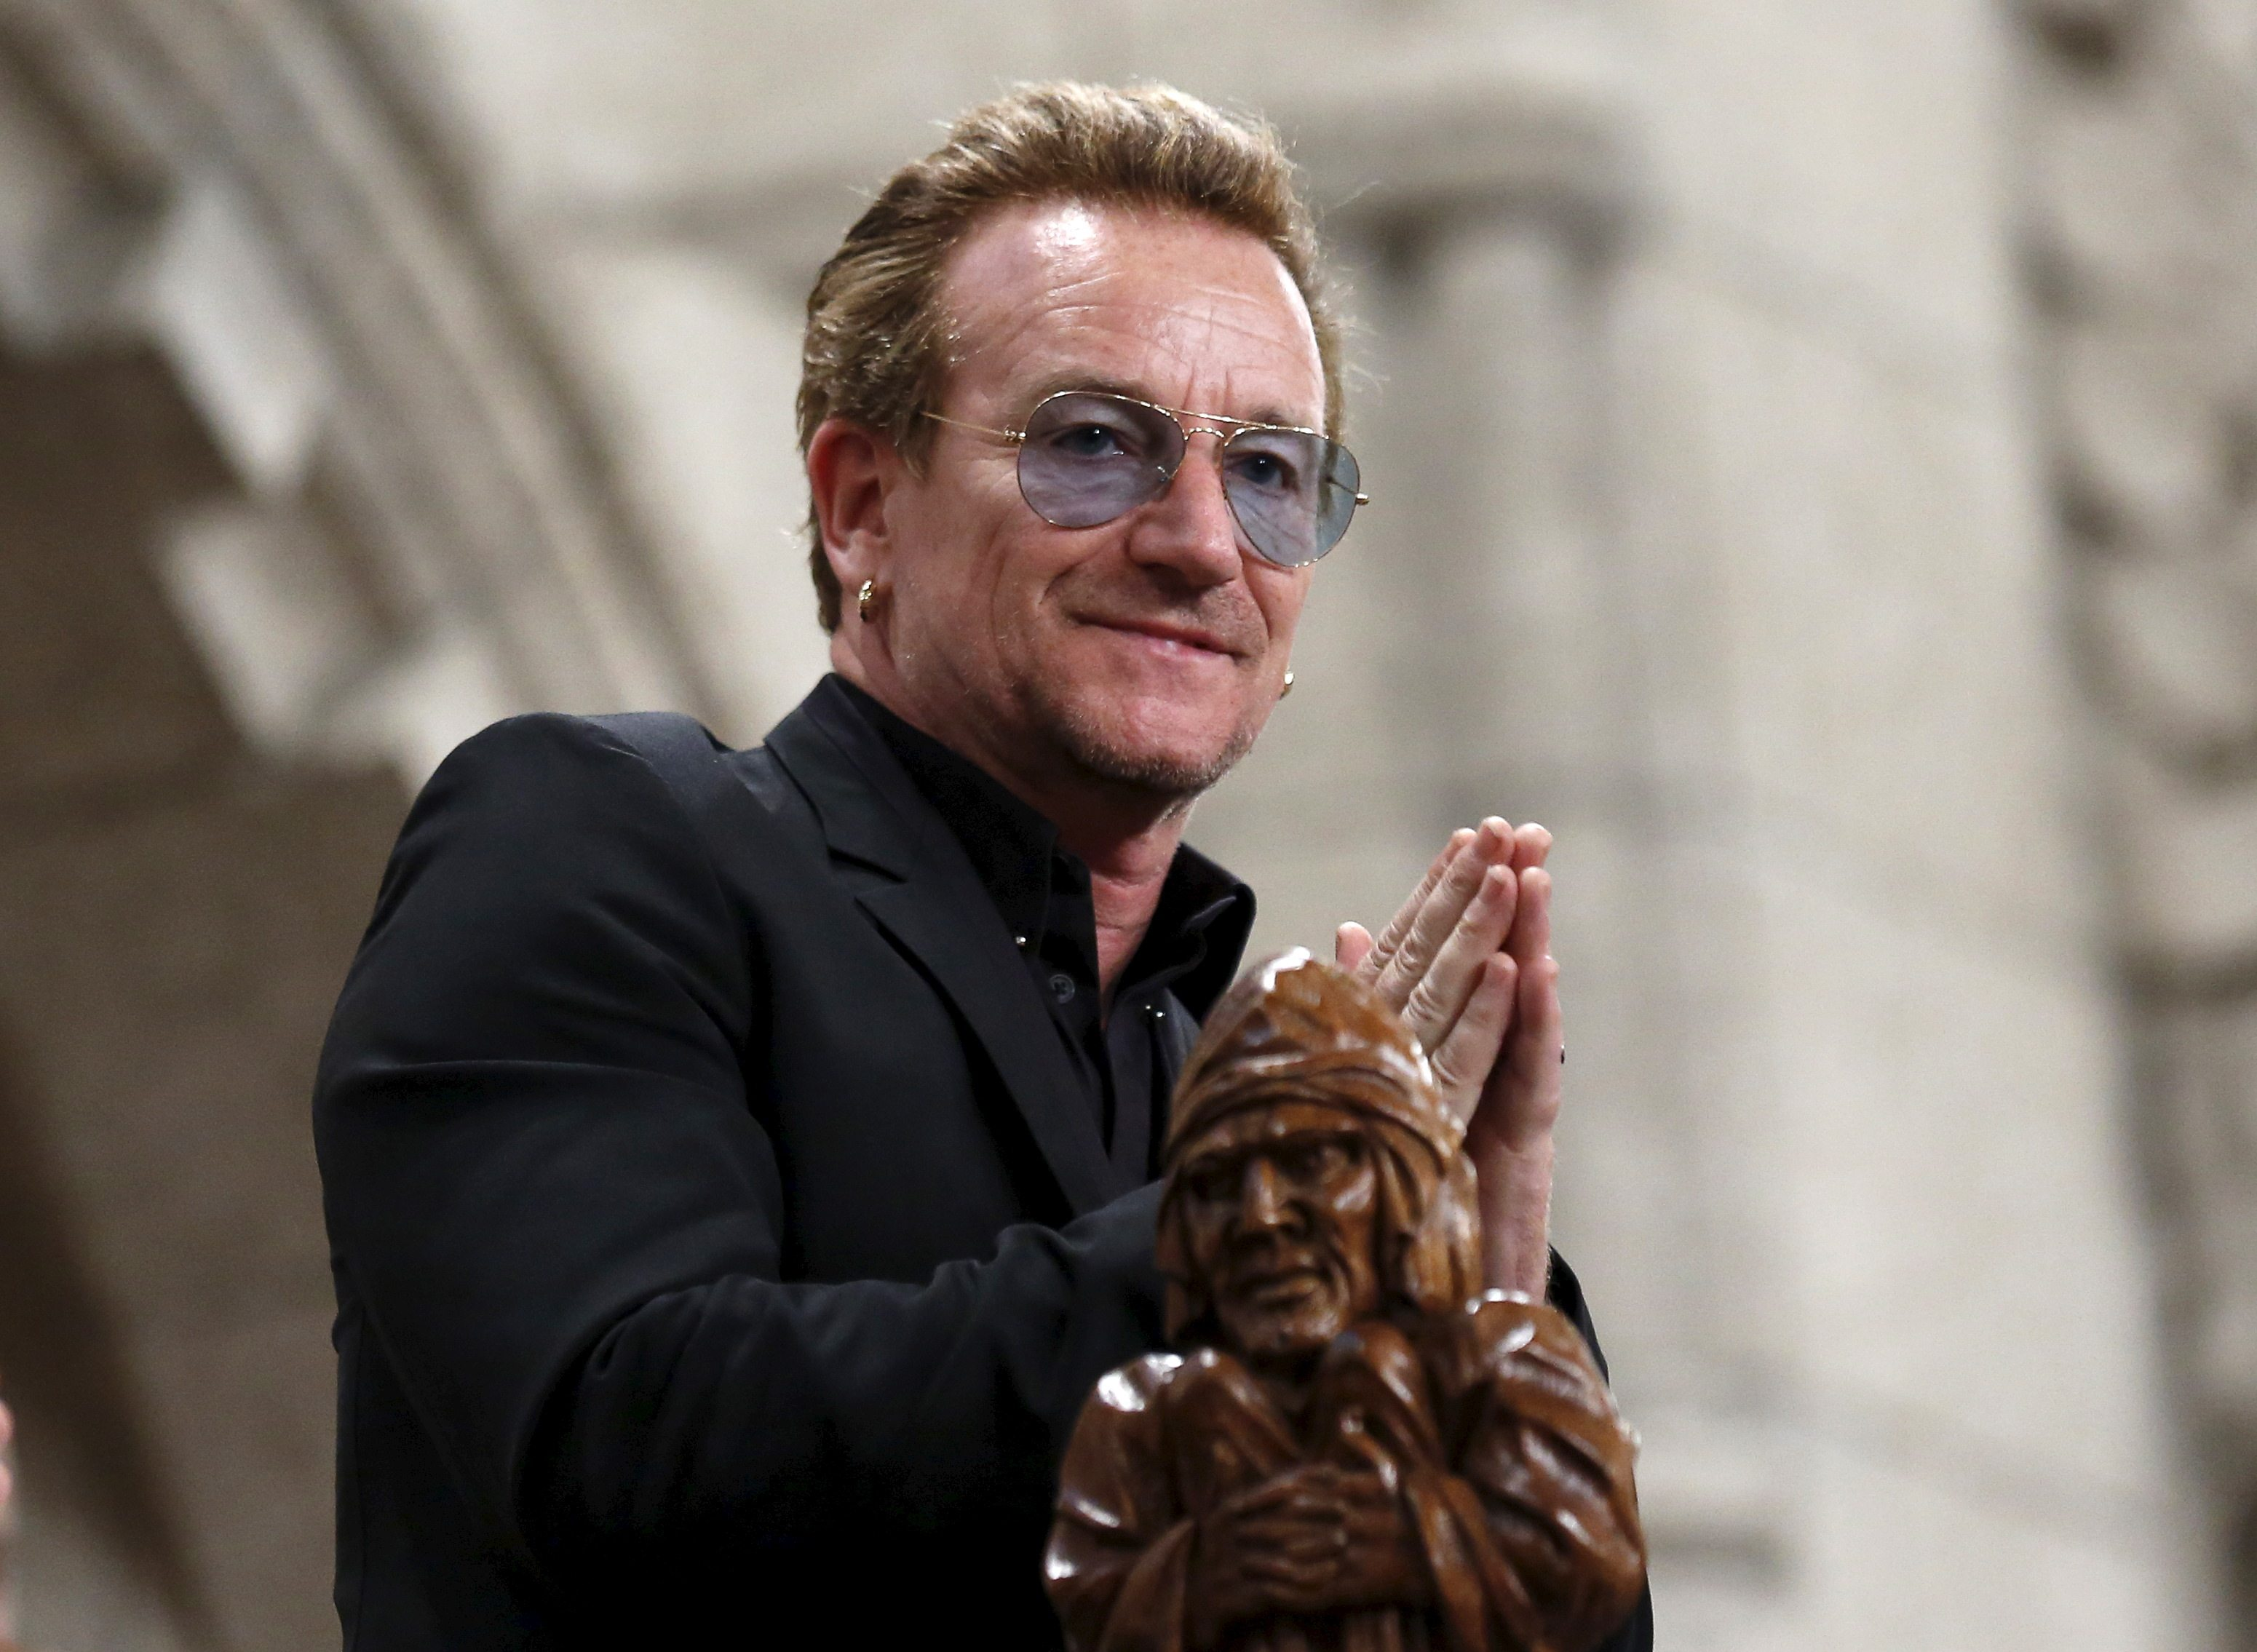 U2 lead singer Bono gestures while being recognized in the House of Commons on Parliament Hill in Ottawa, Canada in this June 15, 2015 file photo. Irish rock band U2 set early December dates for concerts in Paris on November 23, 2015, after cancelling two earlier performances following the attacks by Islamic State militants that took 130 lives.     REUTERS/Chris Wattie/Files